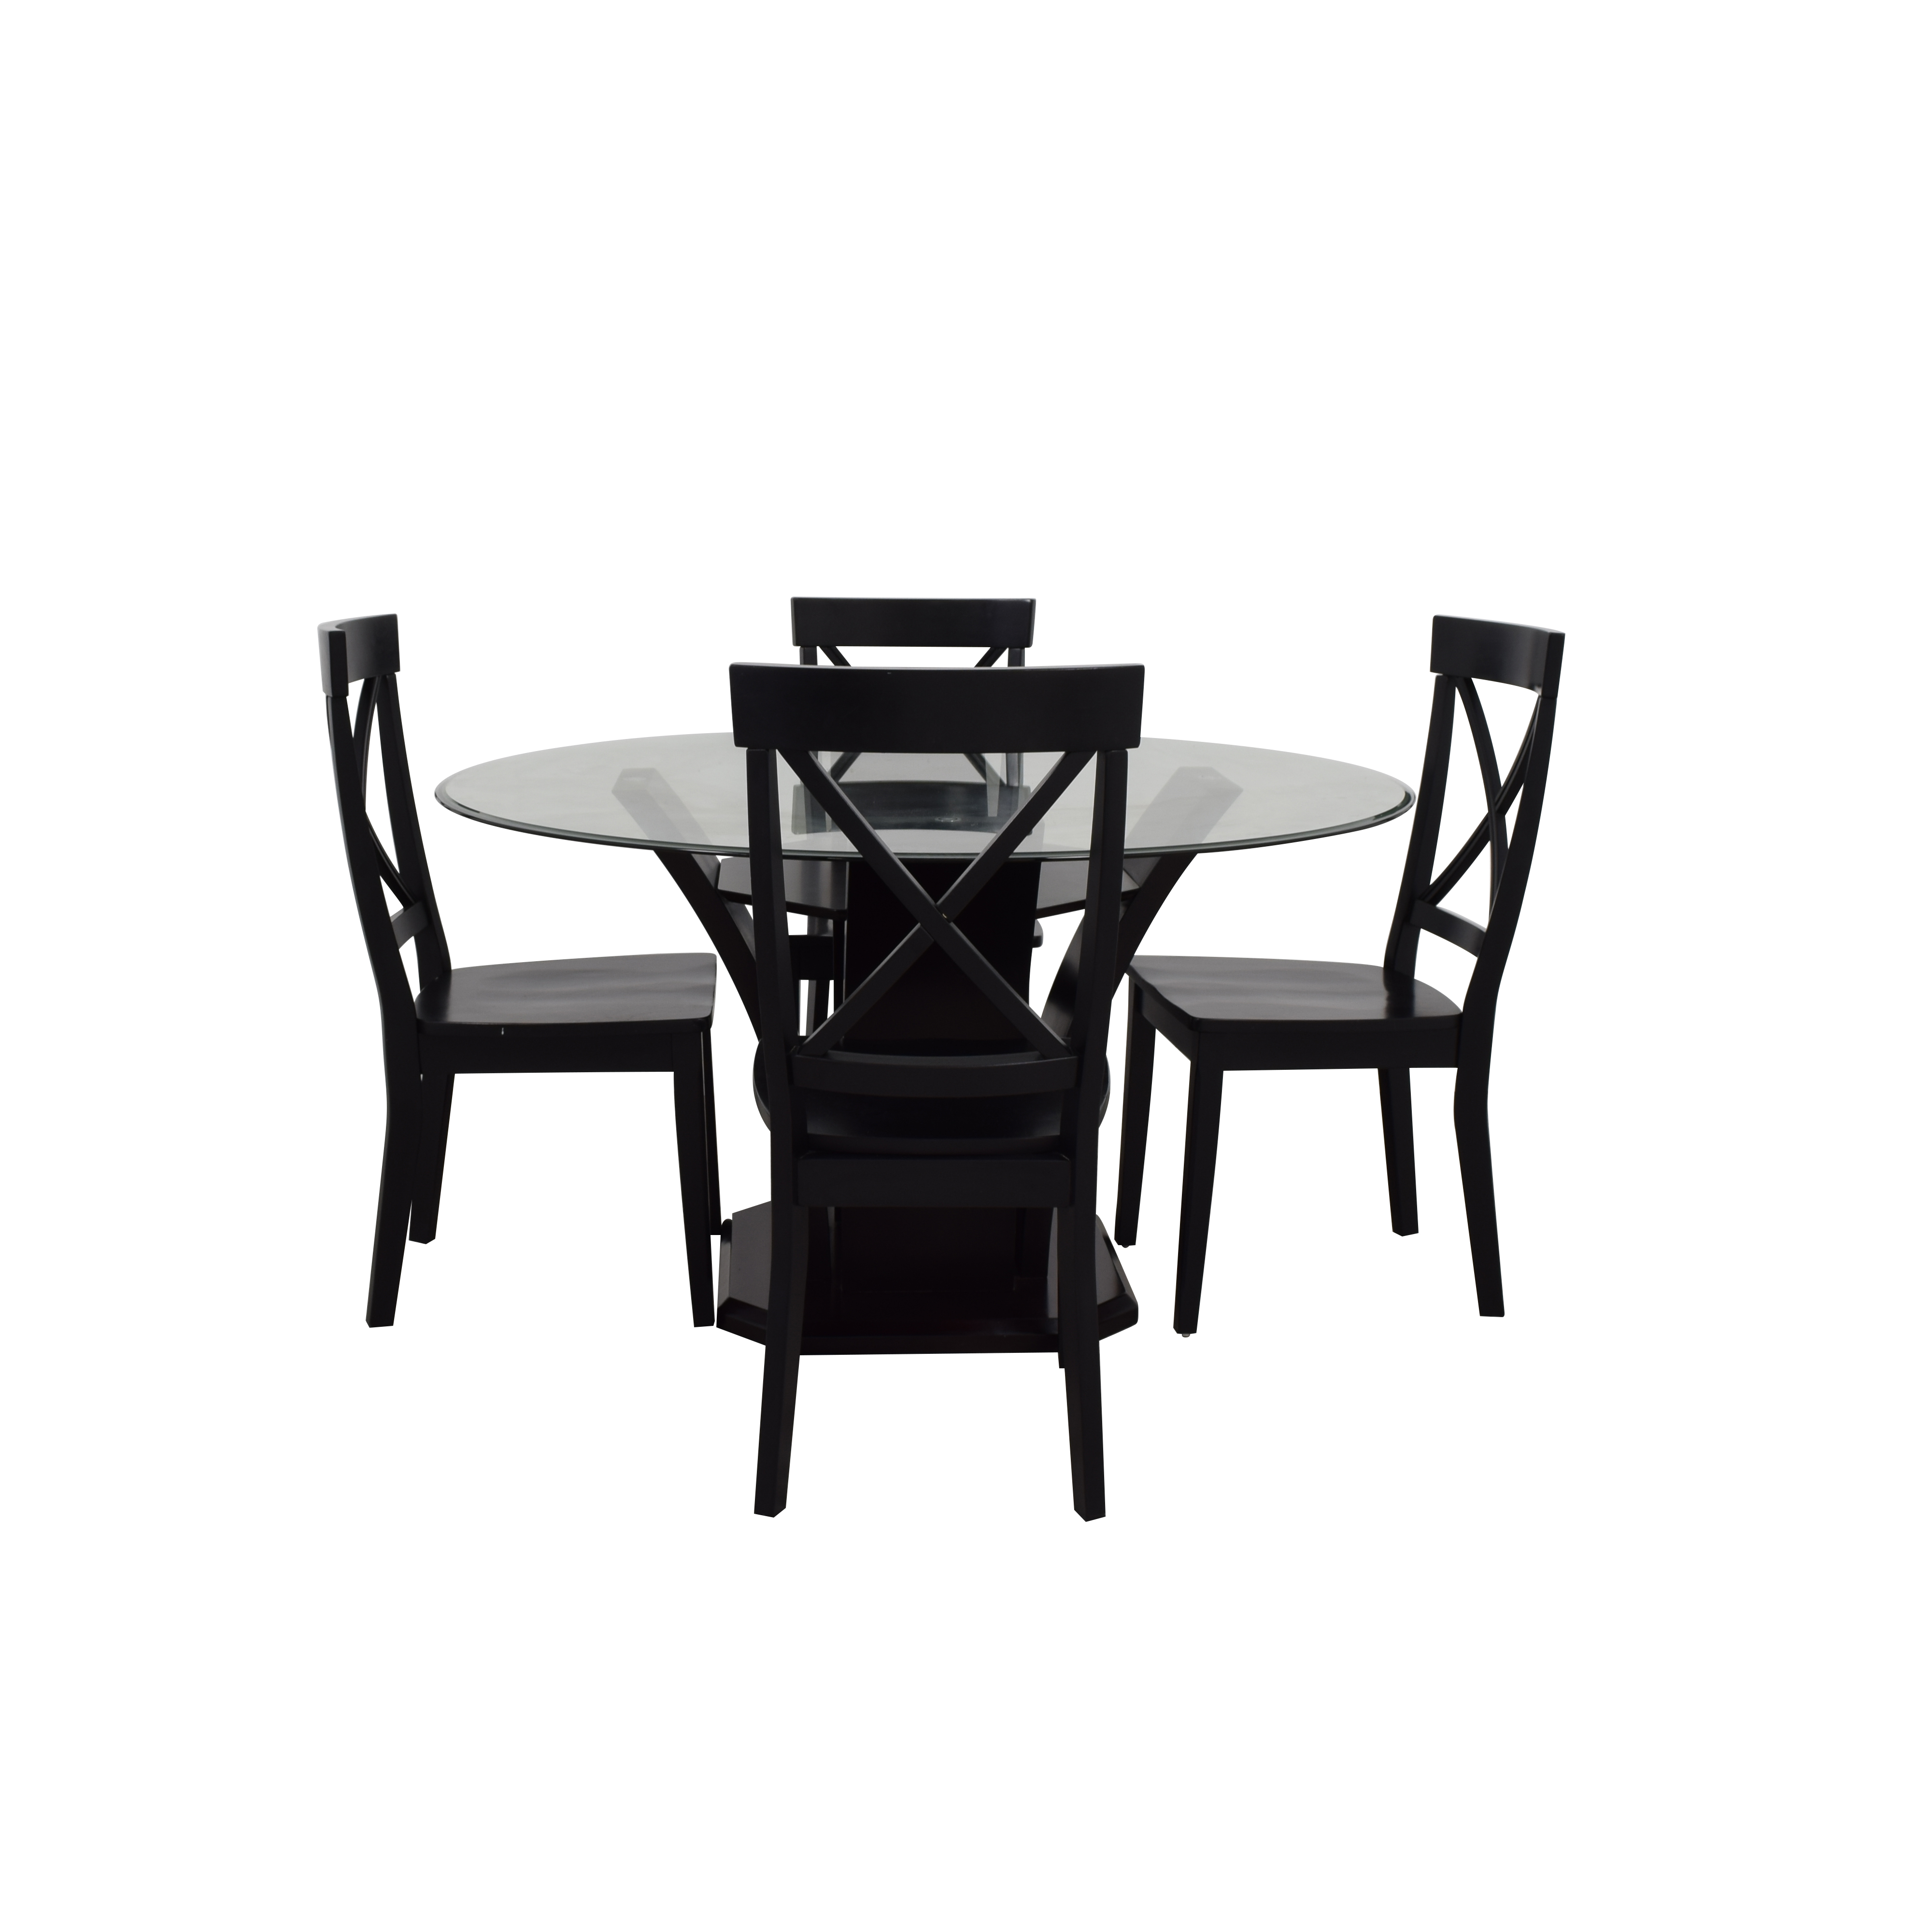 Raymour And Flanigan Dining Chairs: Raymour & Flanigan Raymour & Flanigan Glass